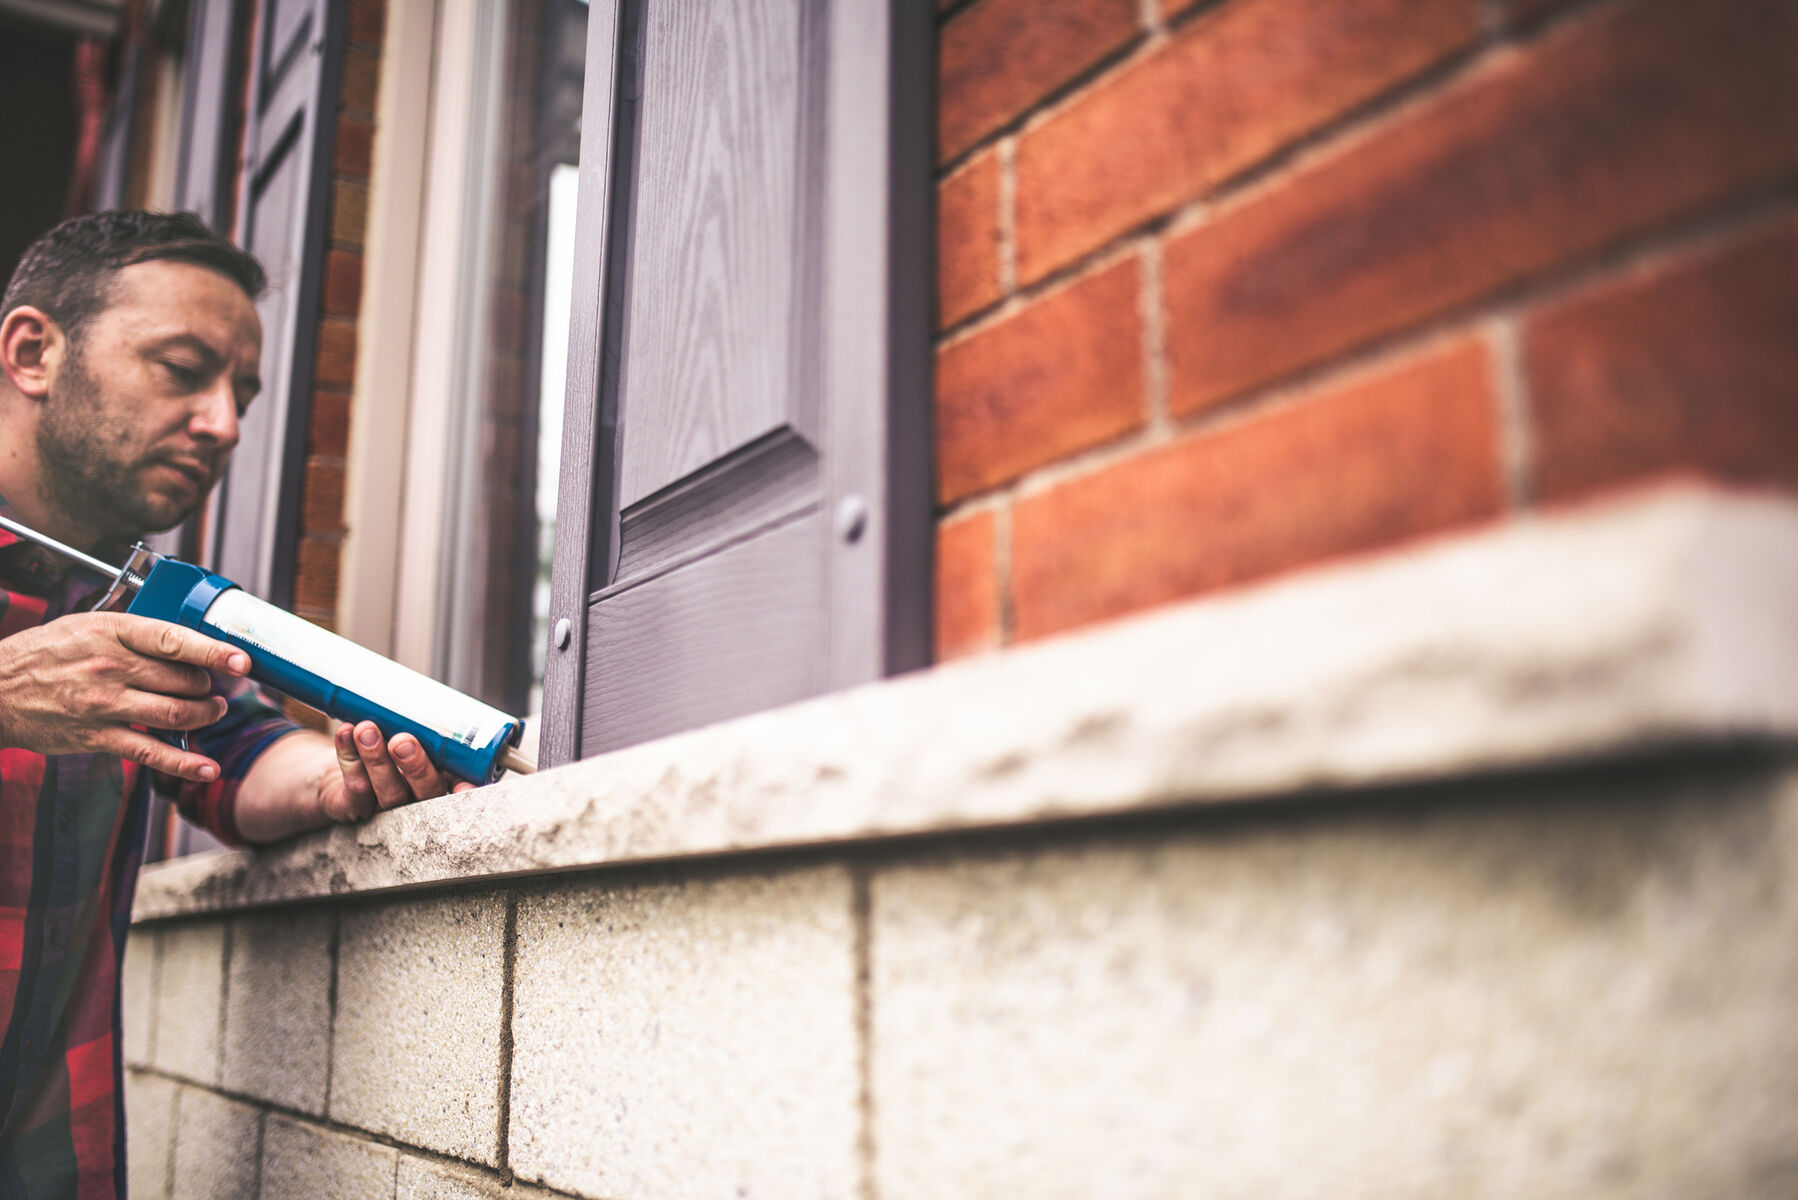 man caulking exterior leaks and cracks on his home with sealant